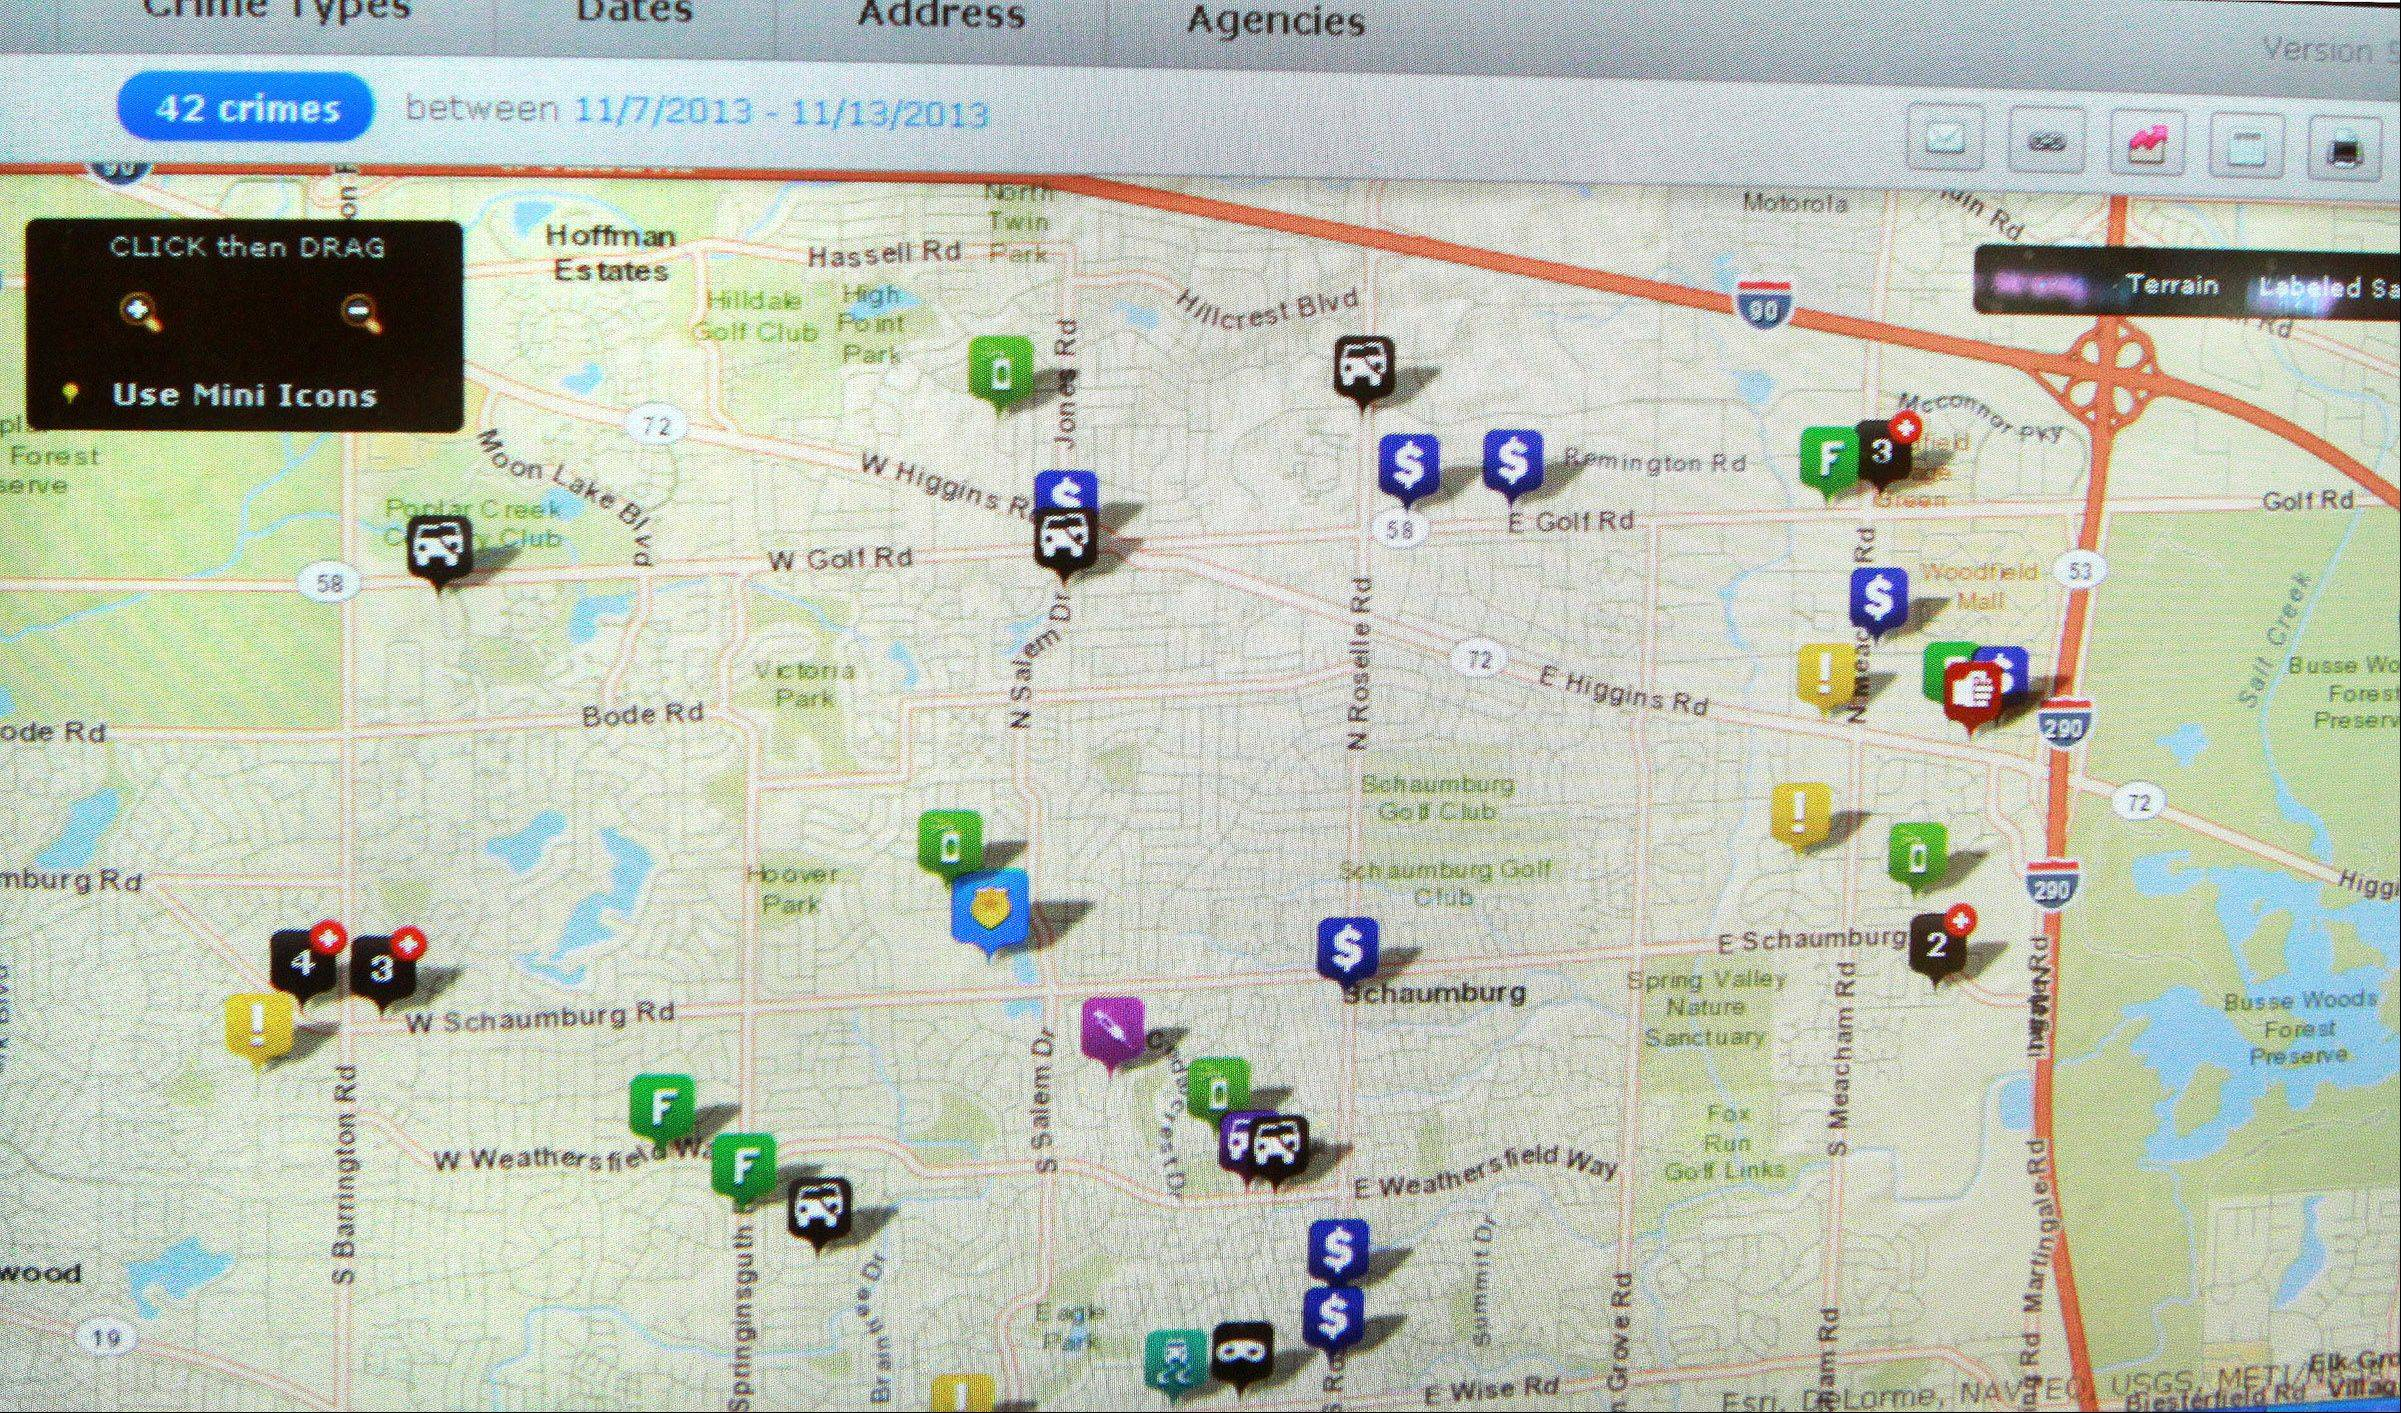 The website crimemapping.com displays the locations and types of crime reported in Schaumburg over the course of the previous week.